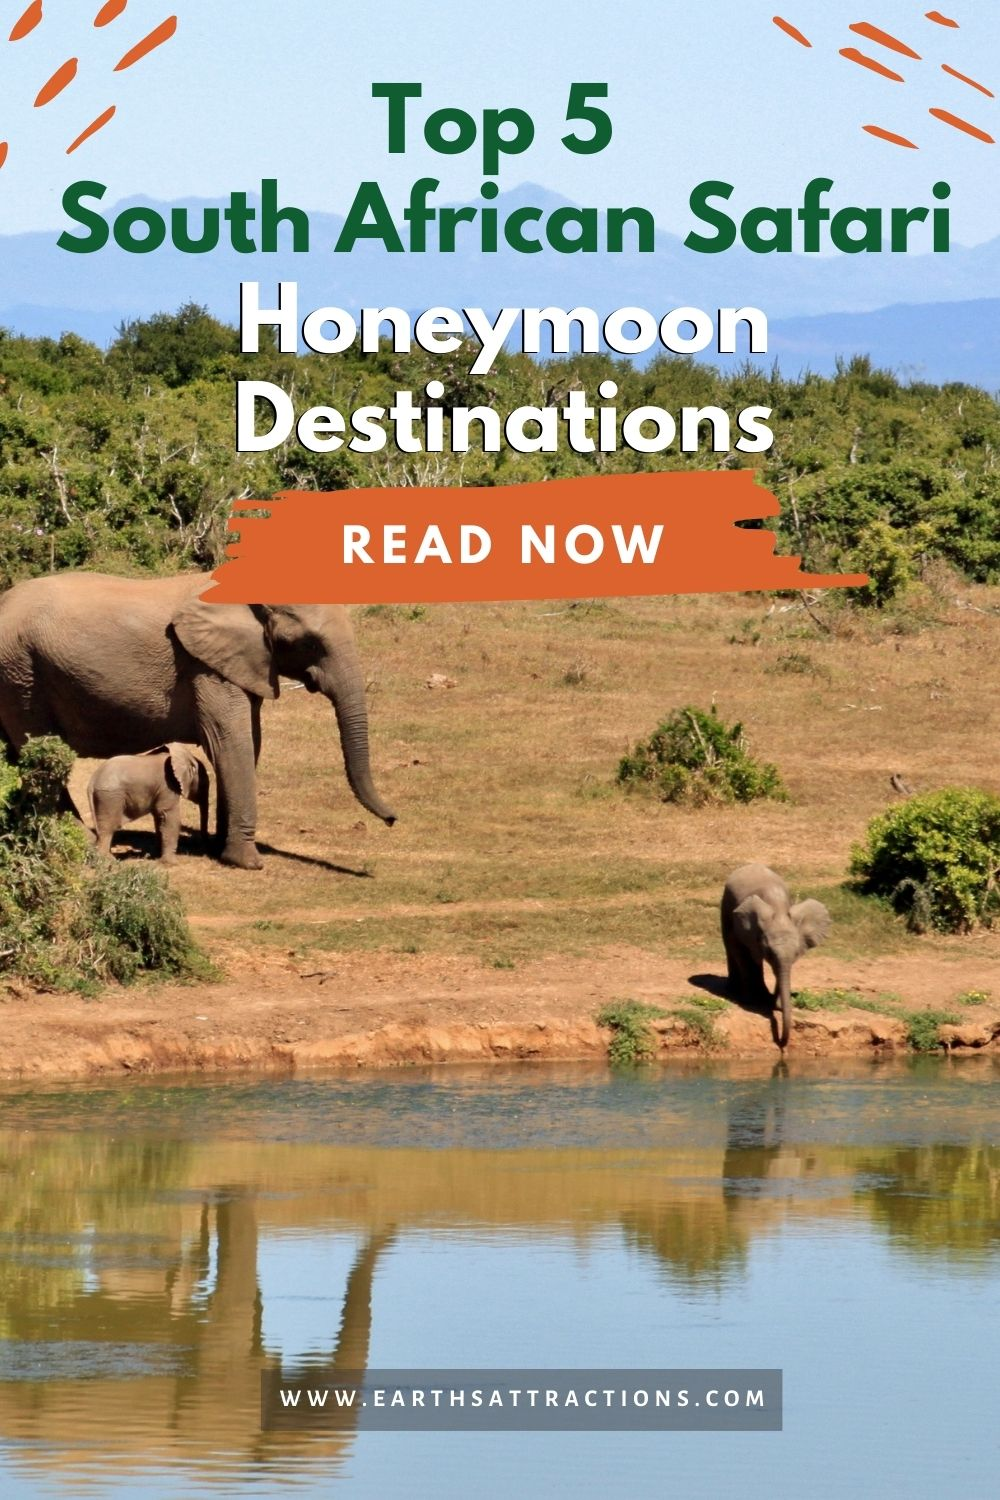 Top 5 South African Safari Honeymoon Destinations. Discover the best South African safari honeymoon destinations for an unforgettable experience! #safari #southafrica #honeymoon #southafricasafari #southafricahoneymoon #southafricadestinations